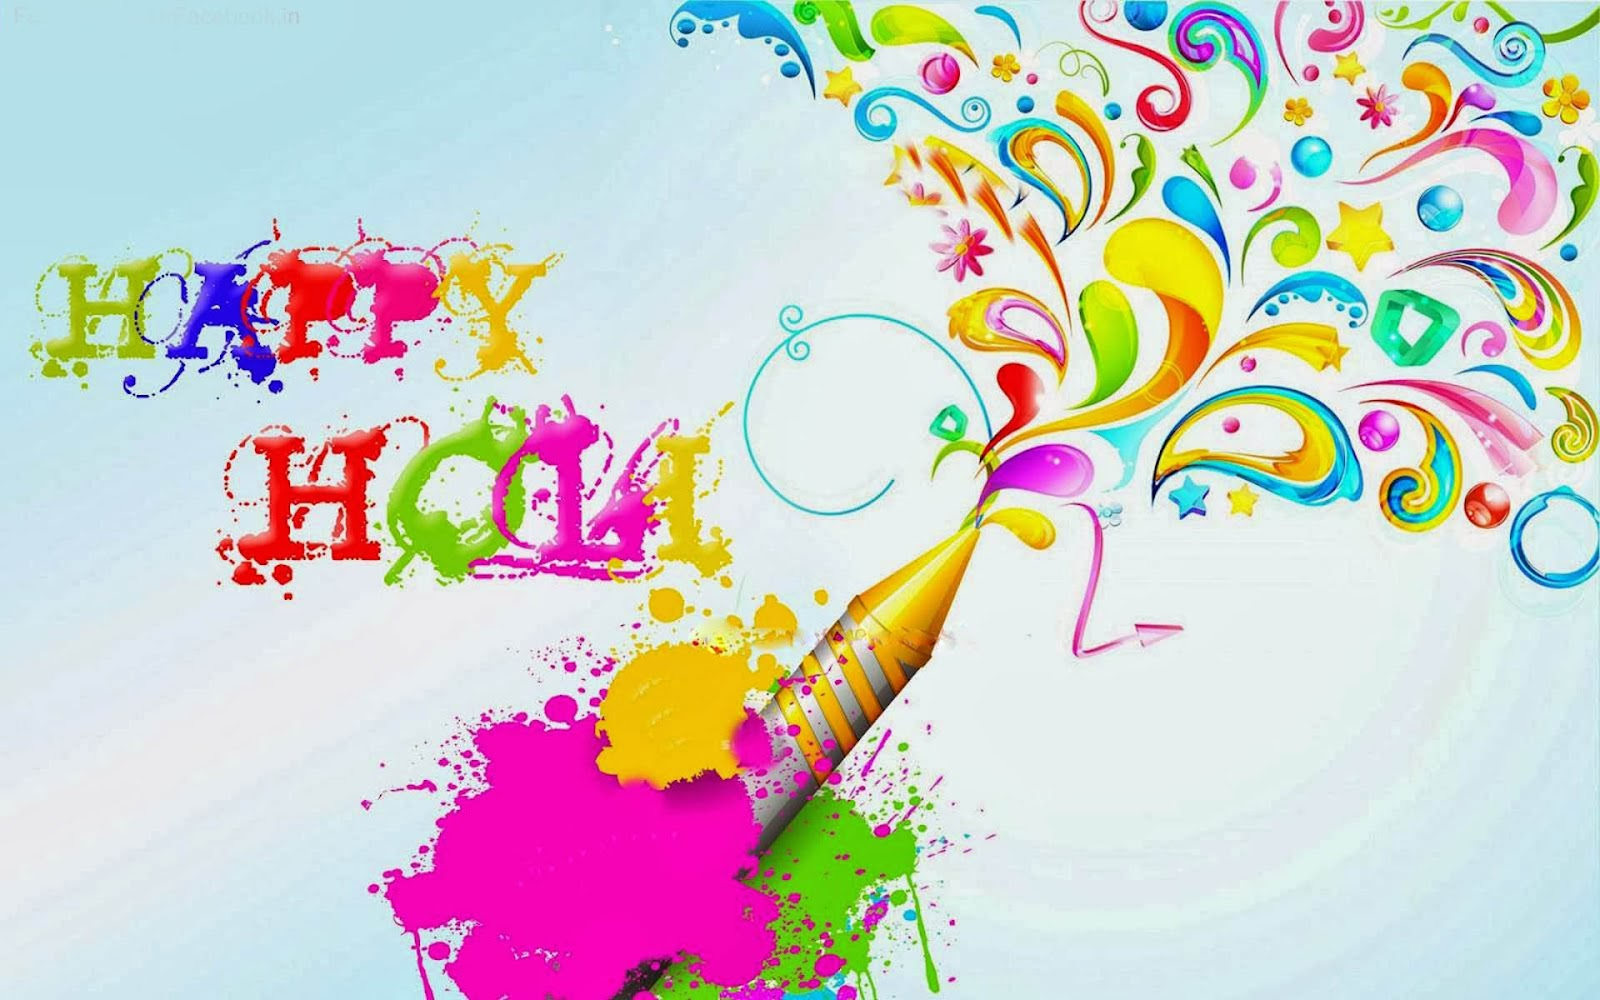 Happy-Holi-Greetings-2017.jpg